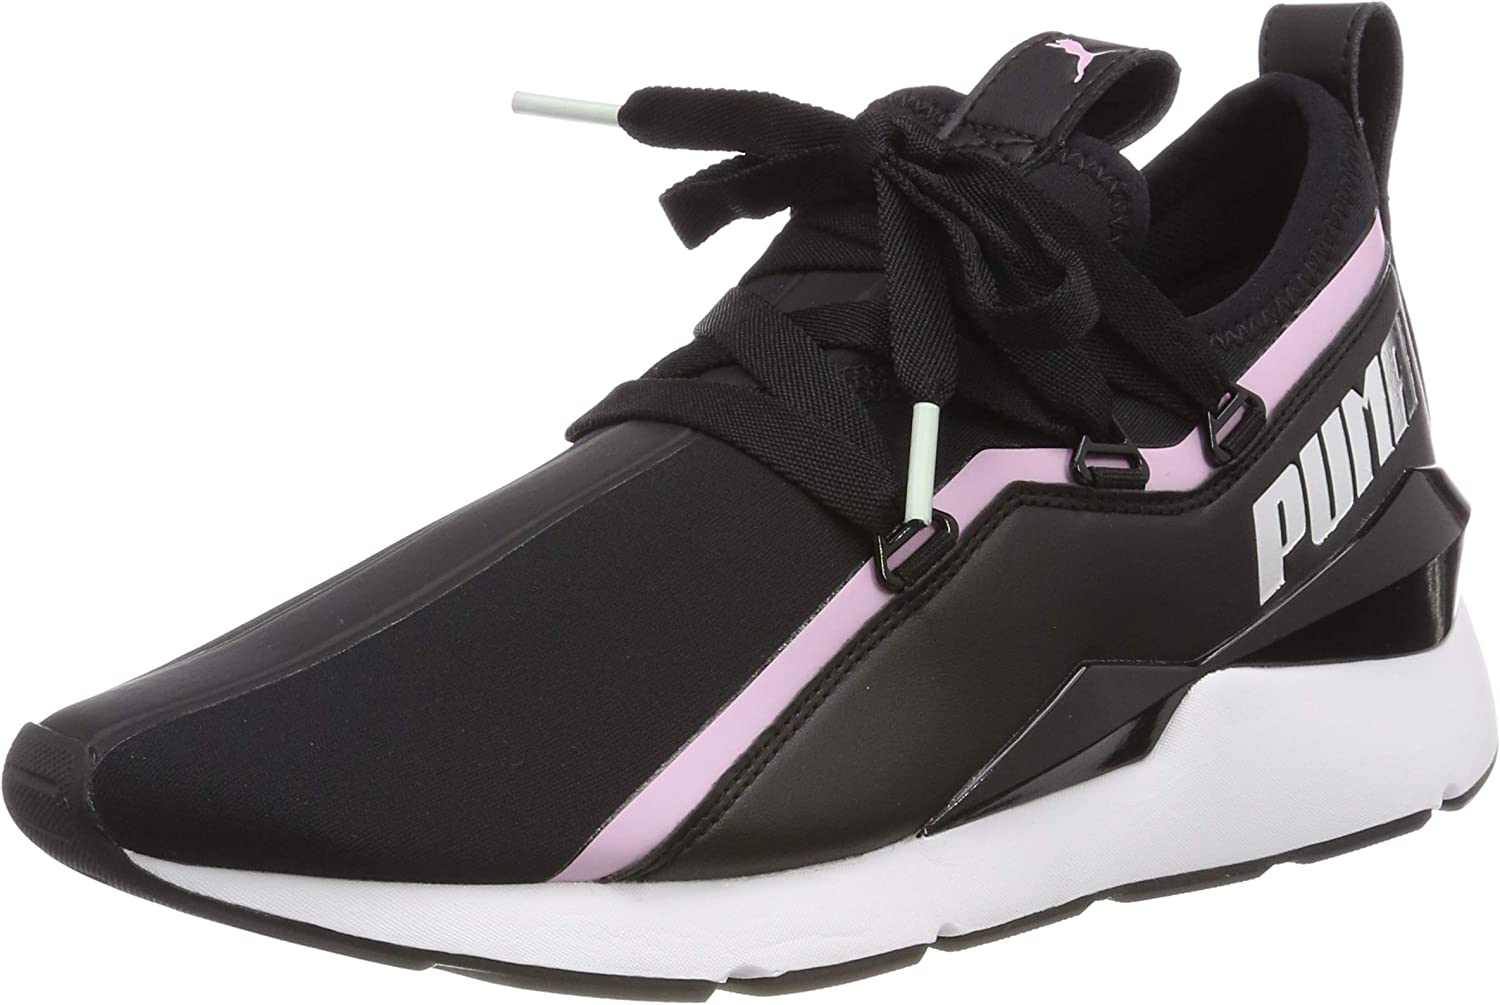 Muse 2 Tz WN's Low-Top Sneakers